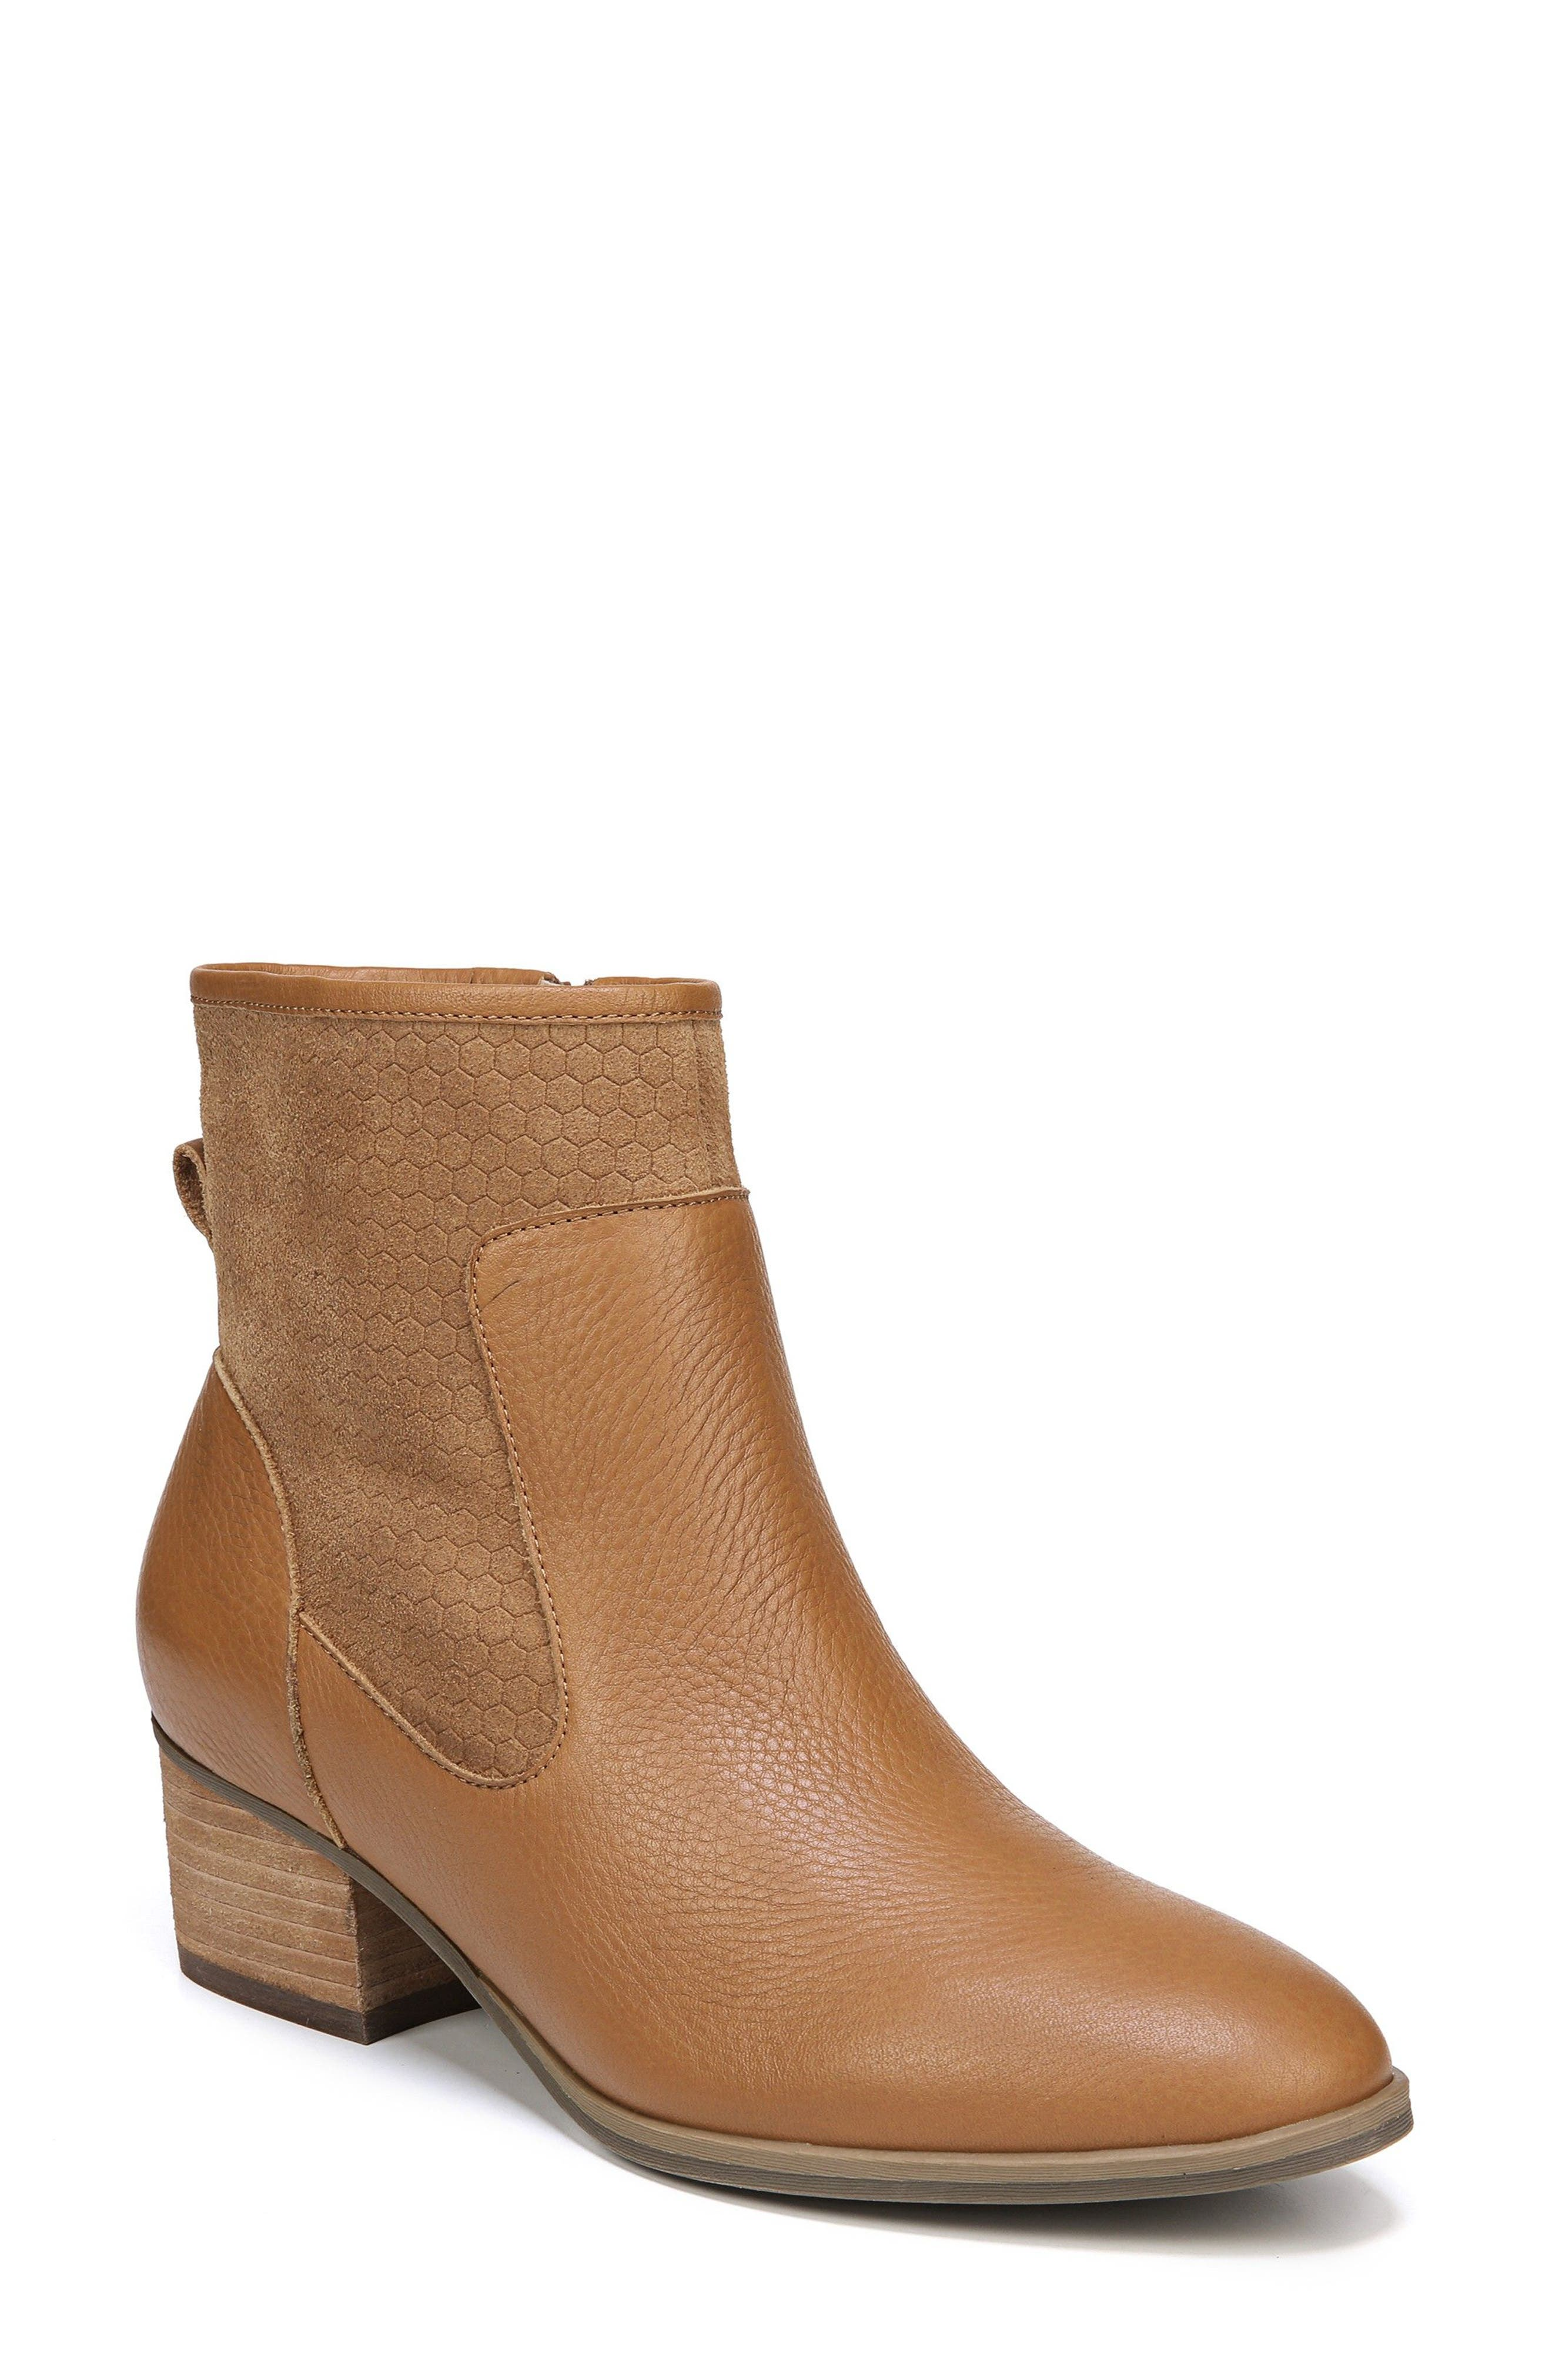 Alternate Image 1 Selected - Dr. Scholl's Tawny Bootie (Women)